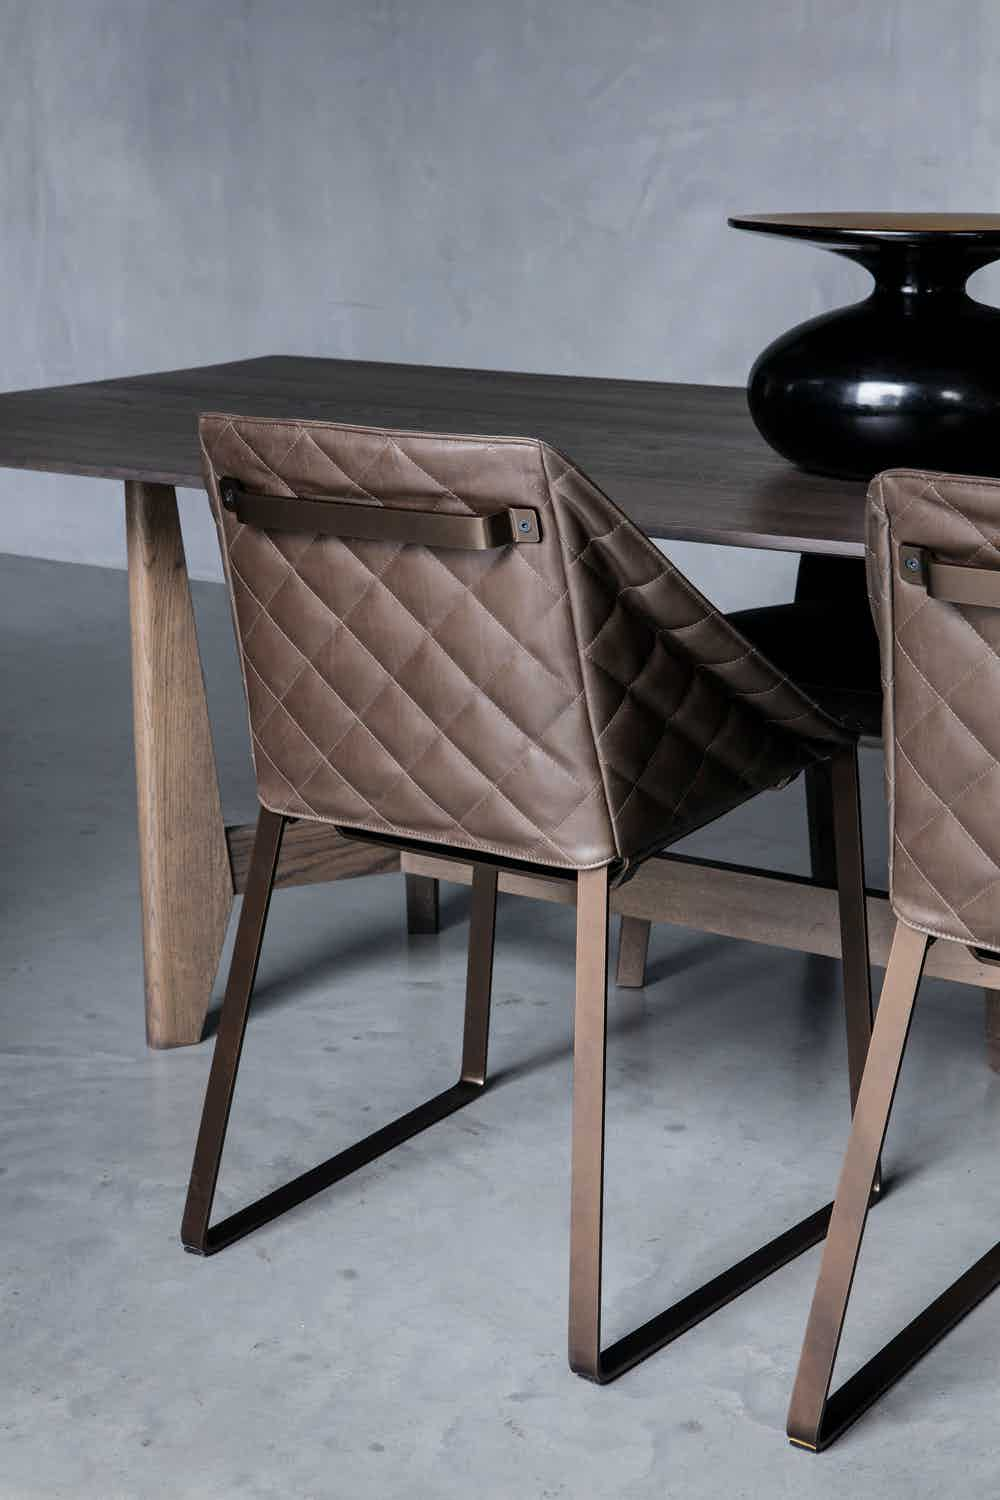 Kekke-dining-chair-by-piet-boon-haute-living